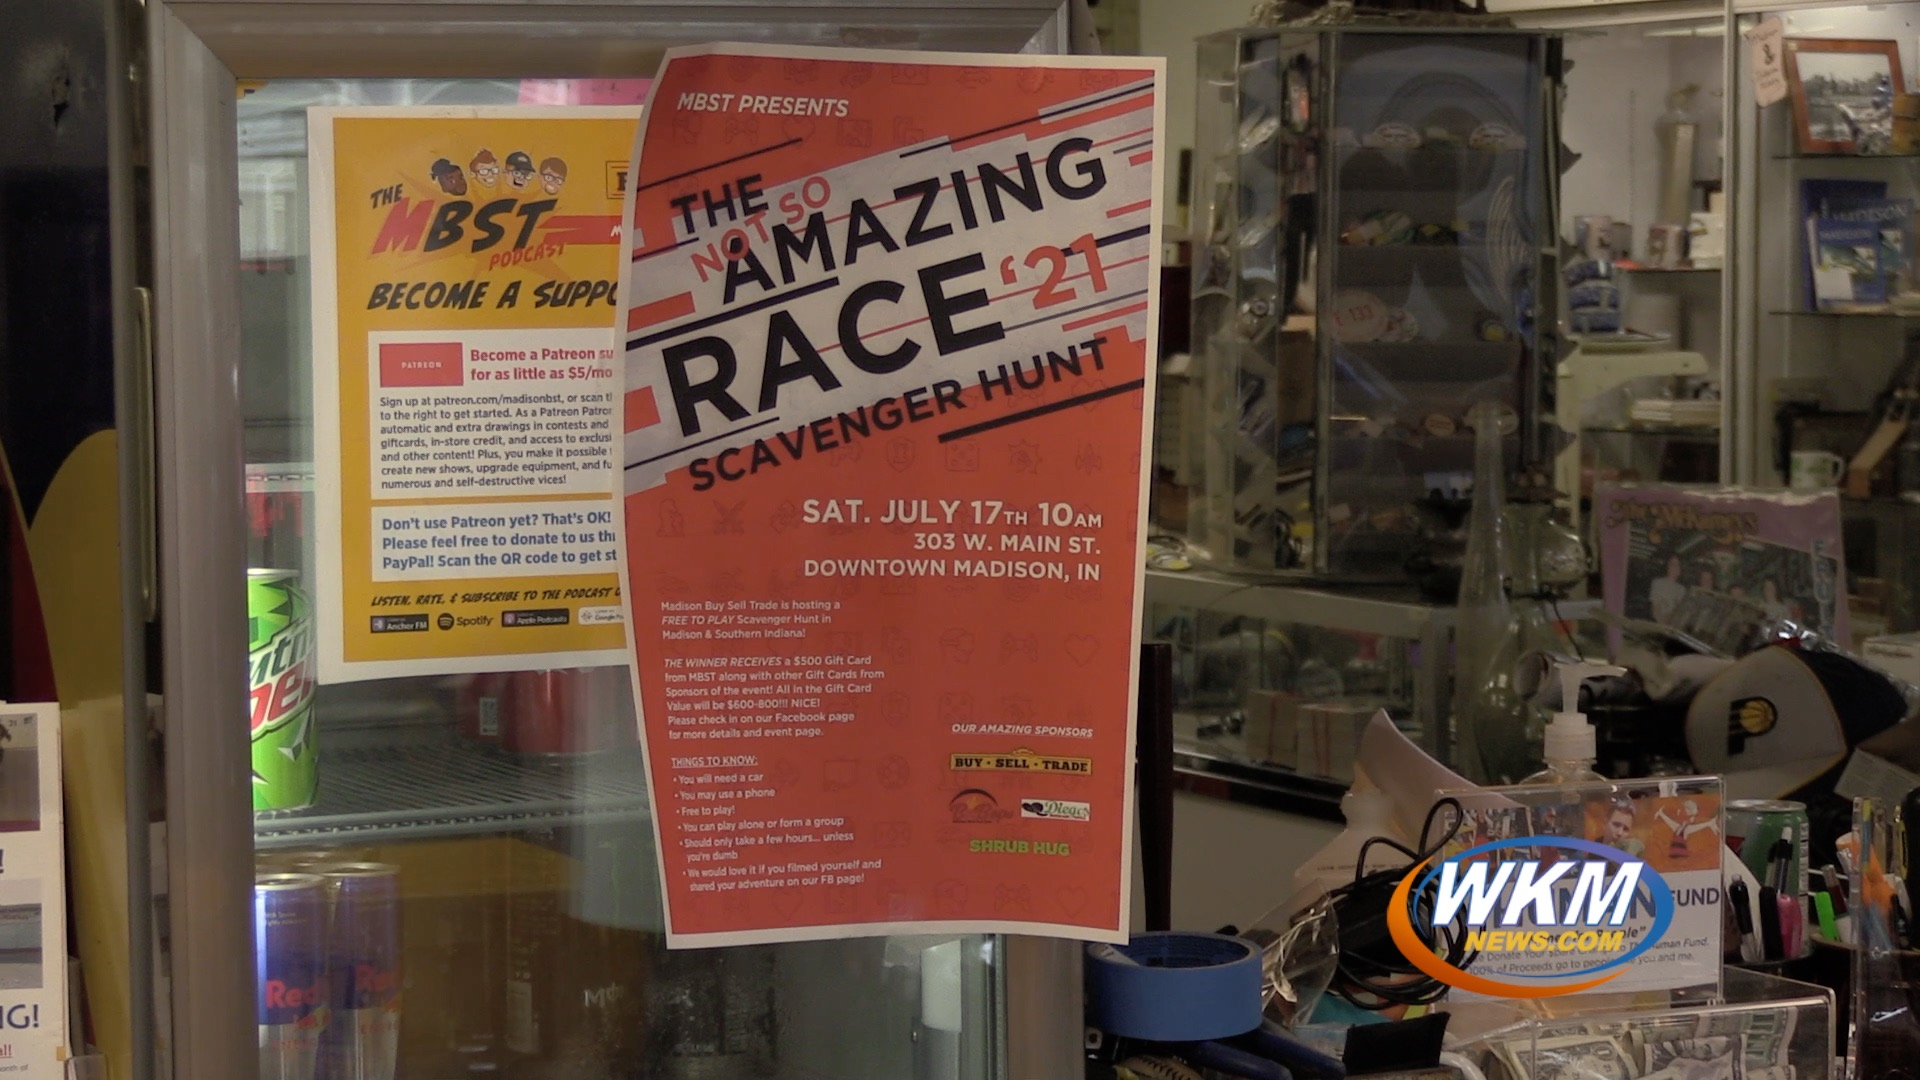 Local Business Hosts a Not-So-Amazing Race